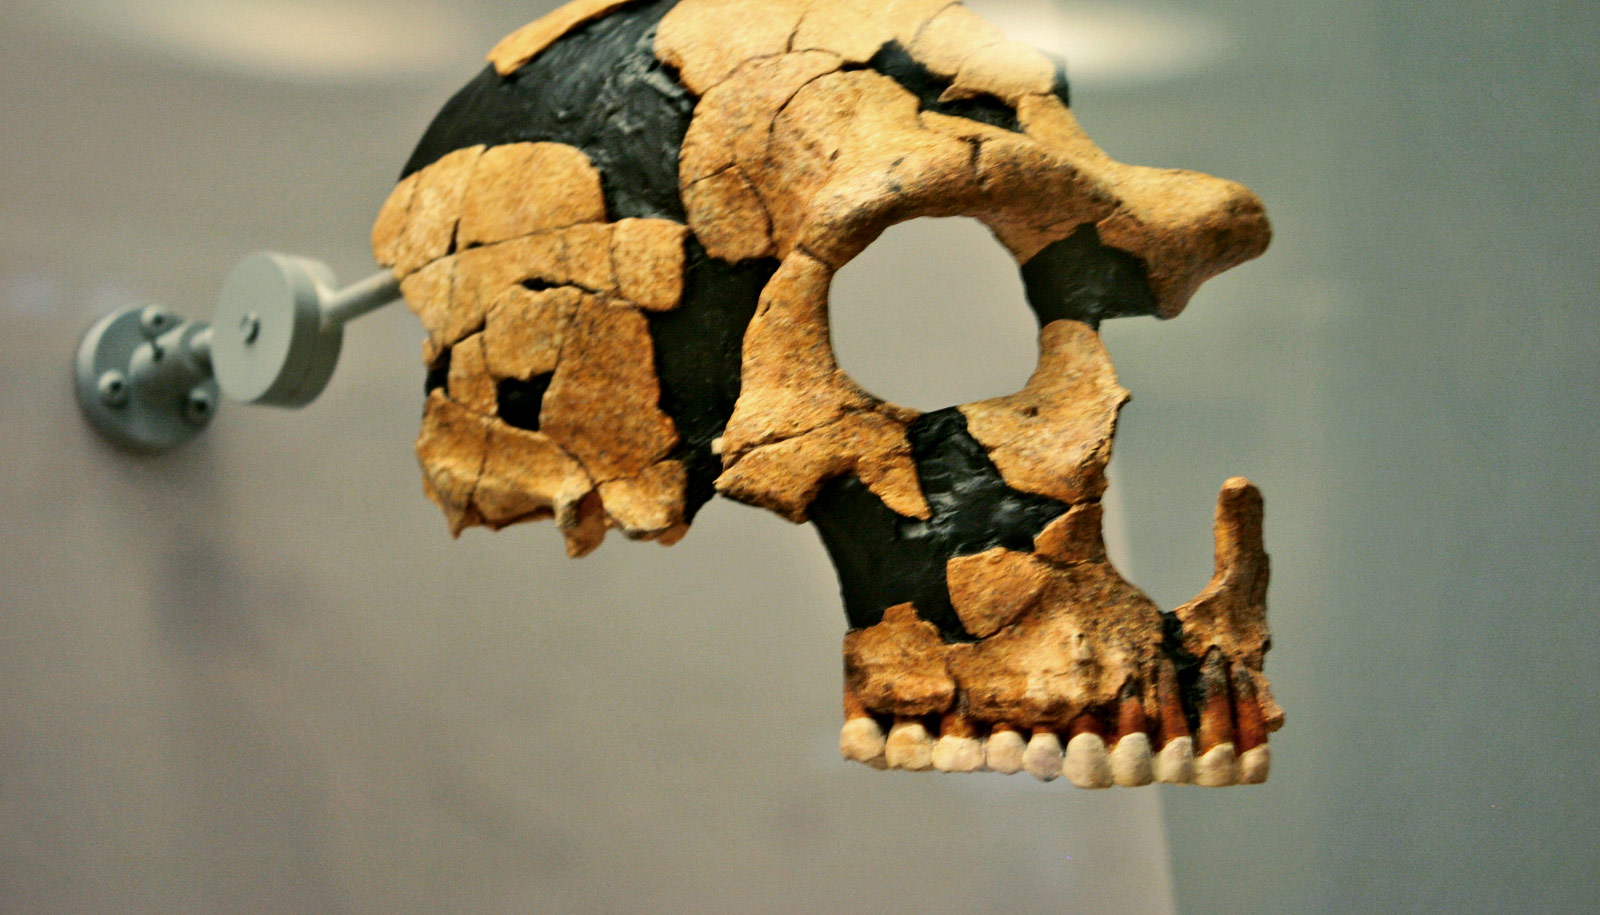 We're losing the Neanderthal bits of our genome